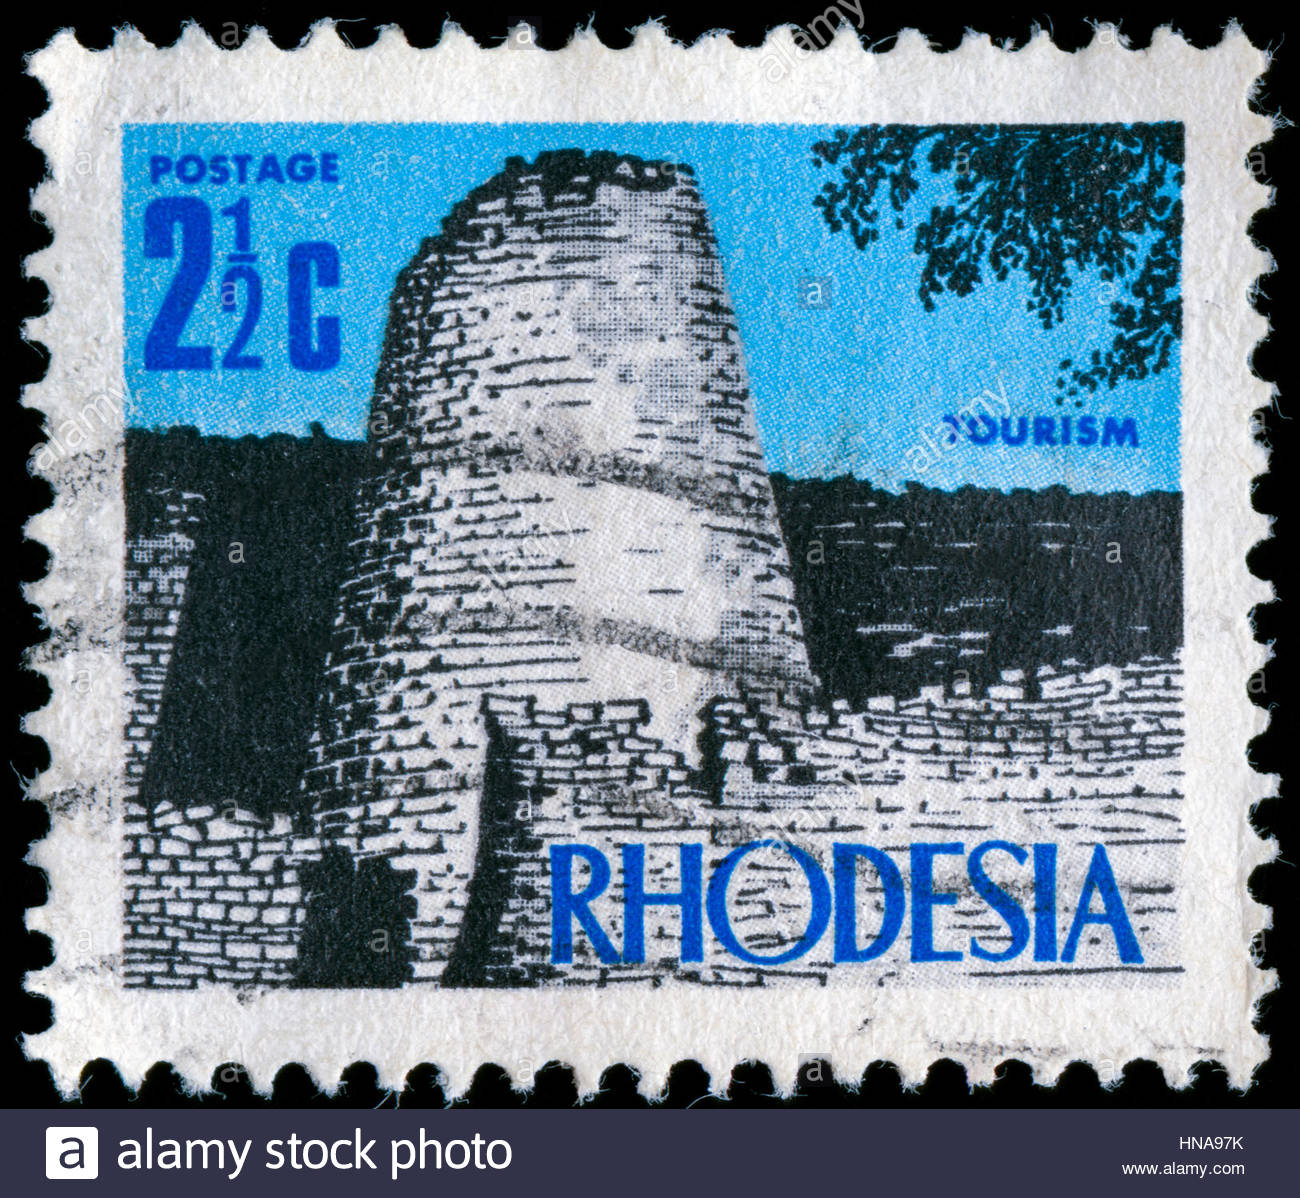 Postage stramp from the former state of Rhodesia in the New Currency Definitives series issued in 1970 - Stock Image